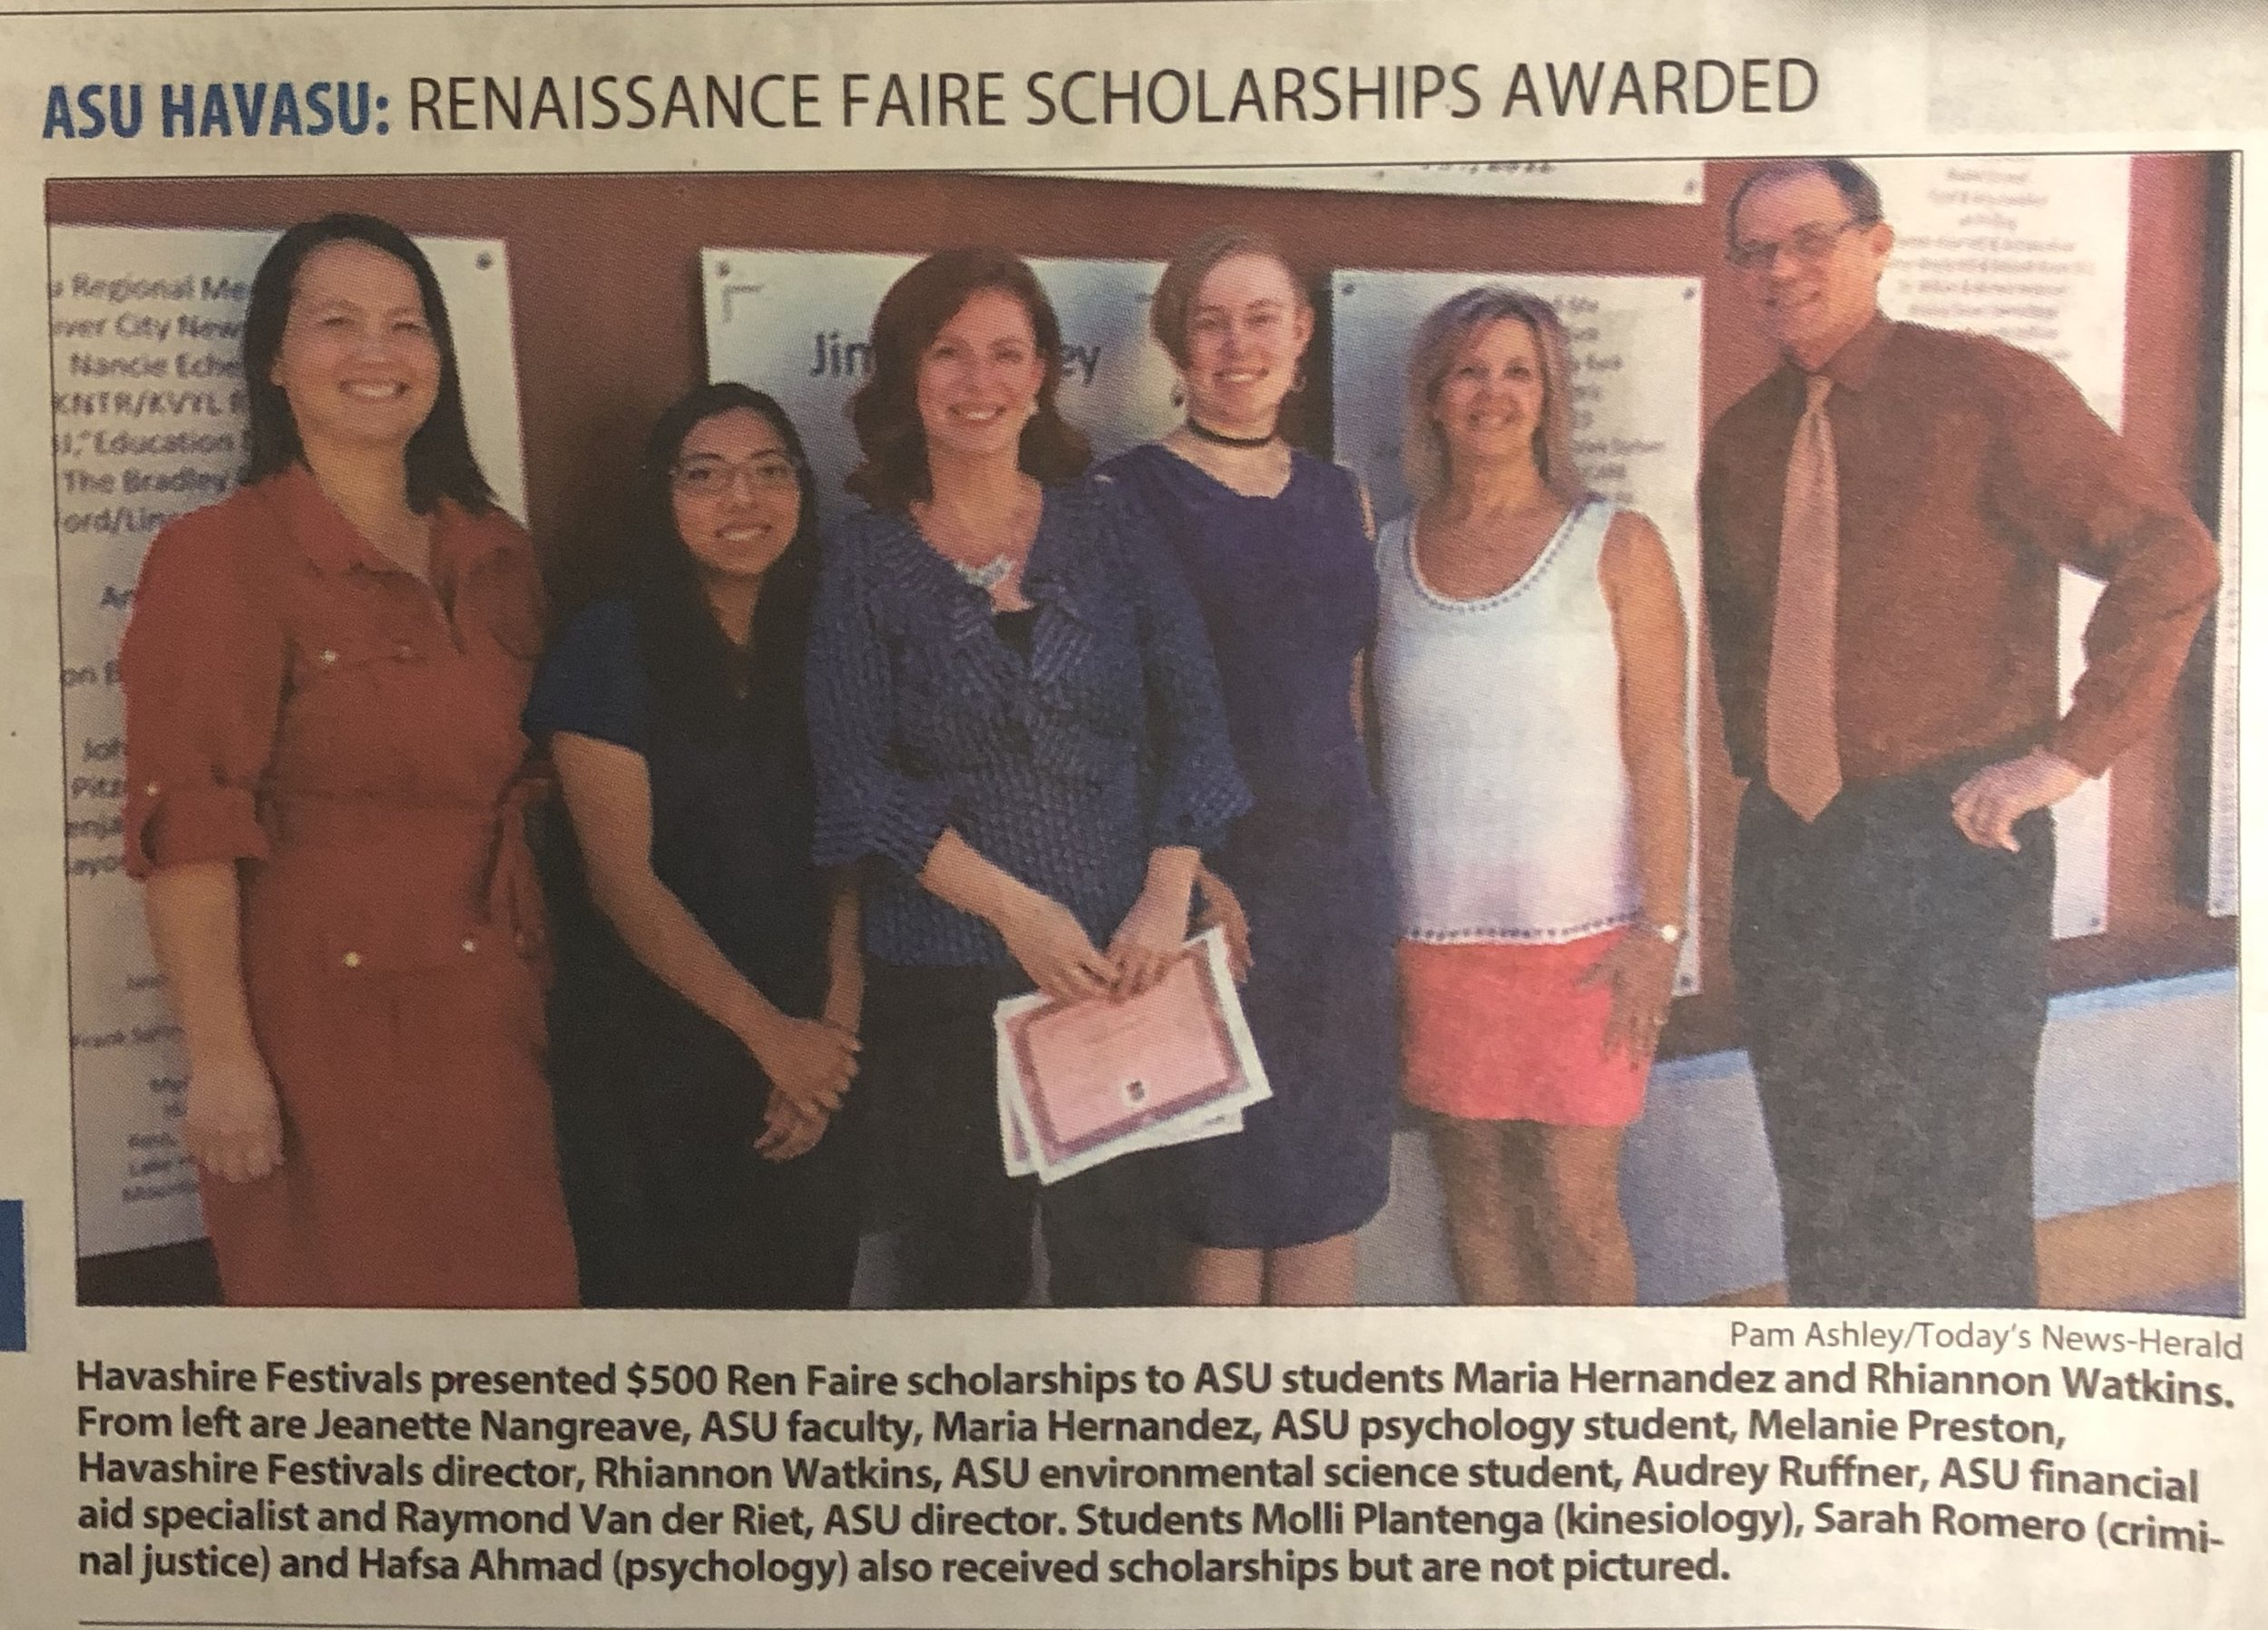 2018 - Havashire Festivals Inc. awarded $500 scholarships from profits from the 2018 London Bridge Renaissance Faire to 5 deserving students attending the local ASU-Havasu Campus. Students will be present with scholarship certificates at a ceremony to be held during the Fall 2018 semester.